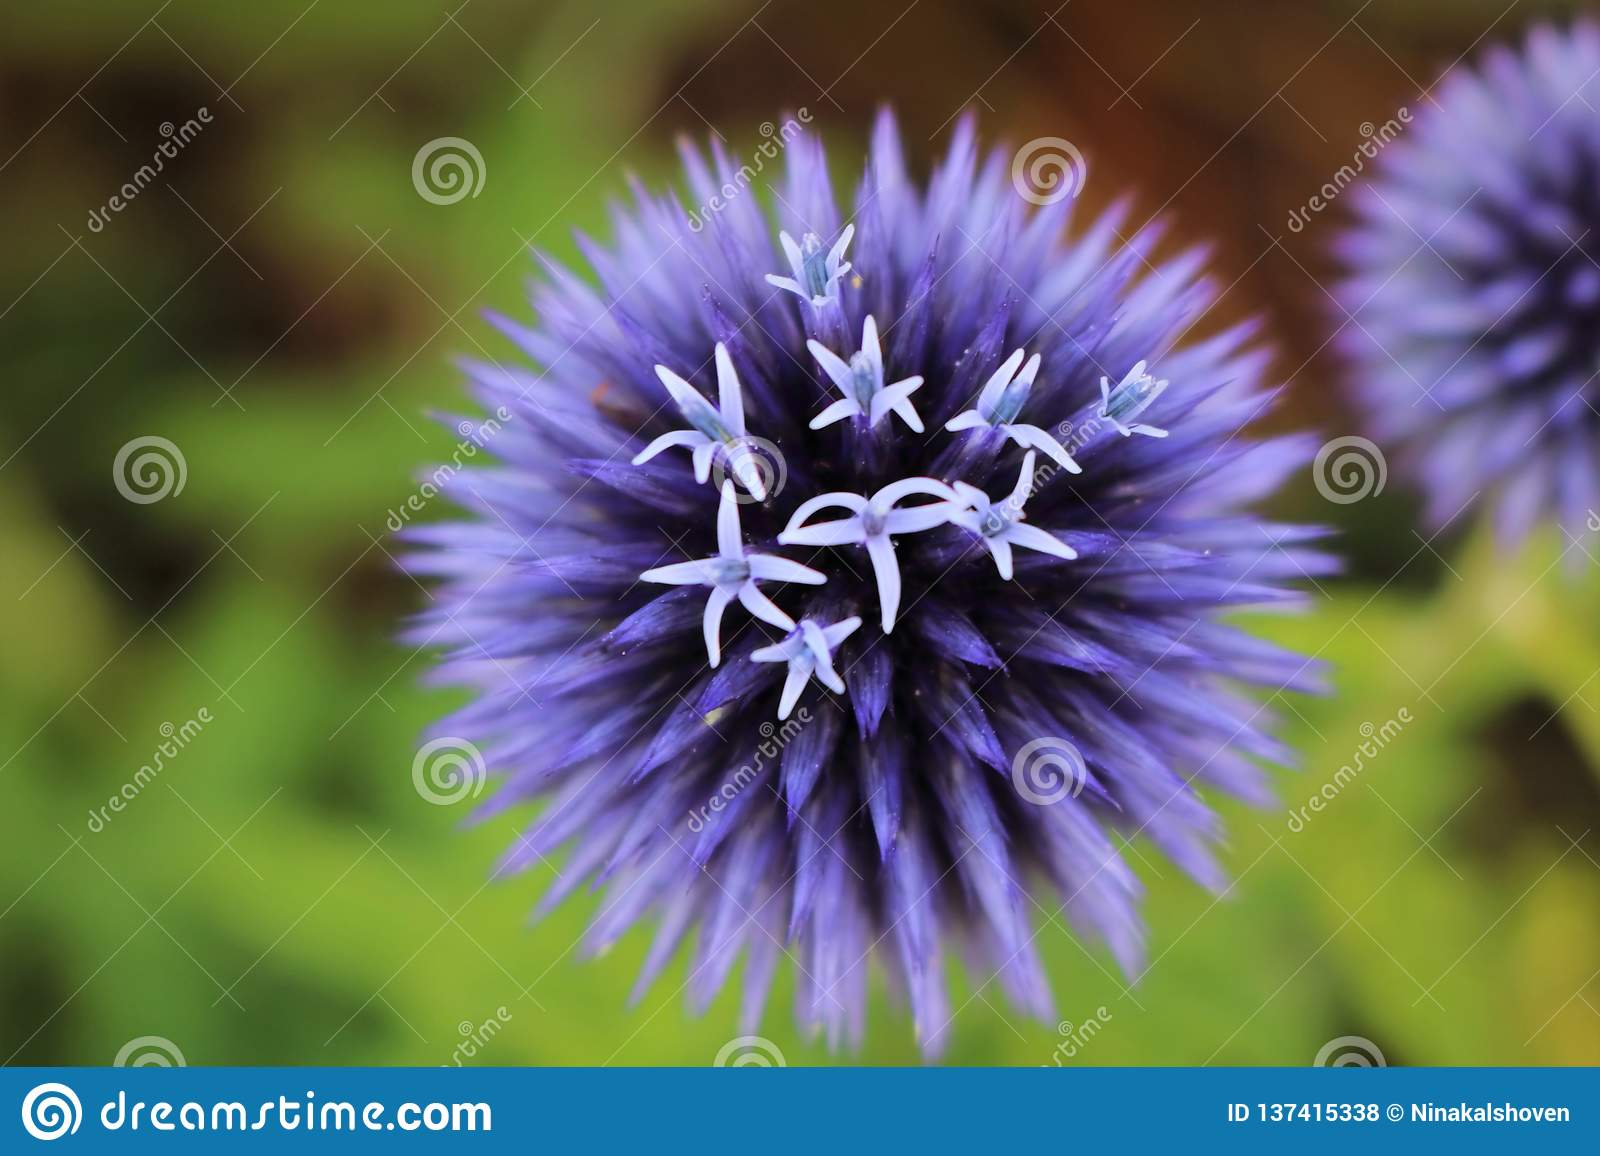 A Blooming Purple Perennial Flower Stock Photo Image Of Bloom